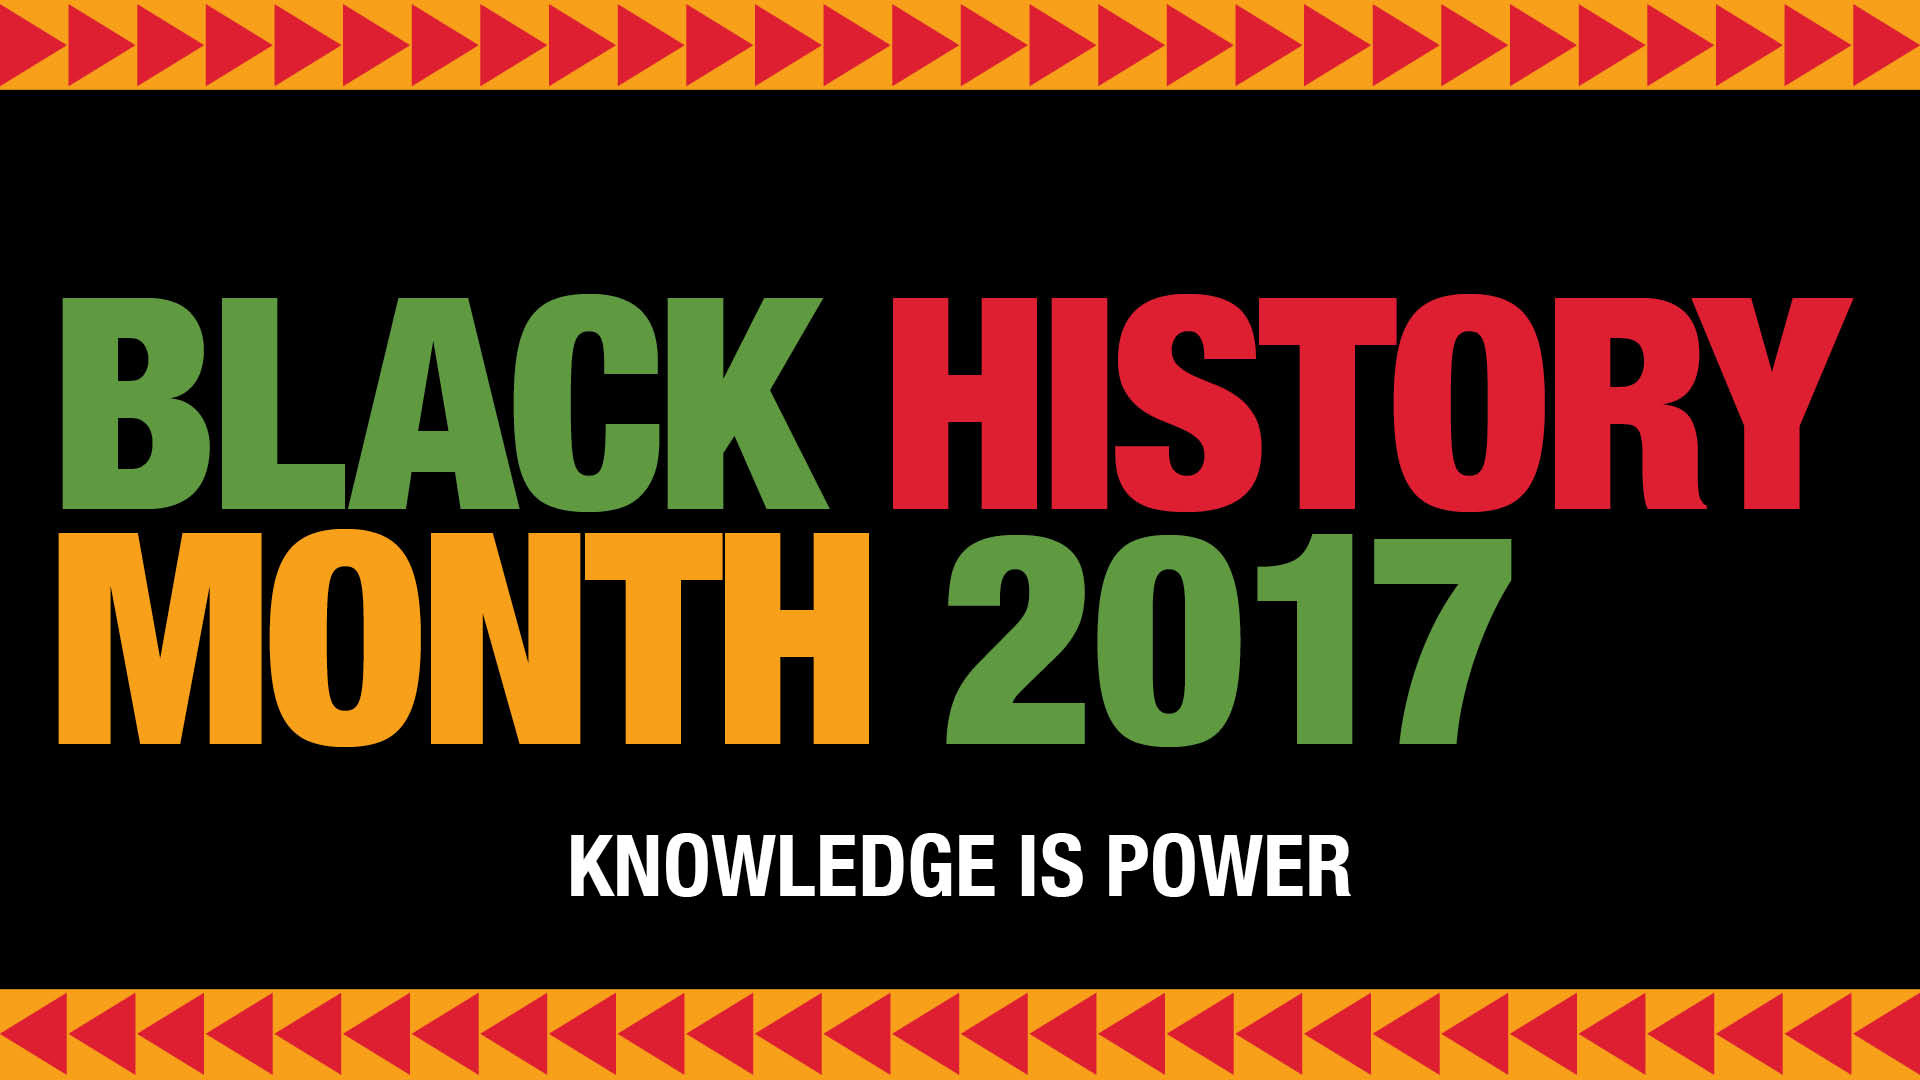 1920x1080 Black History Month events